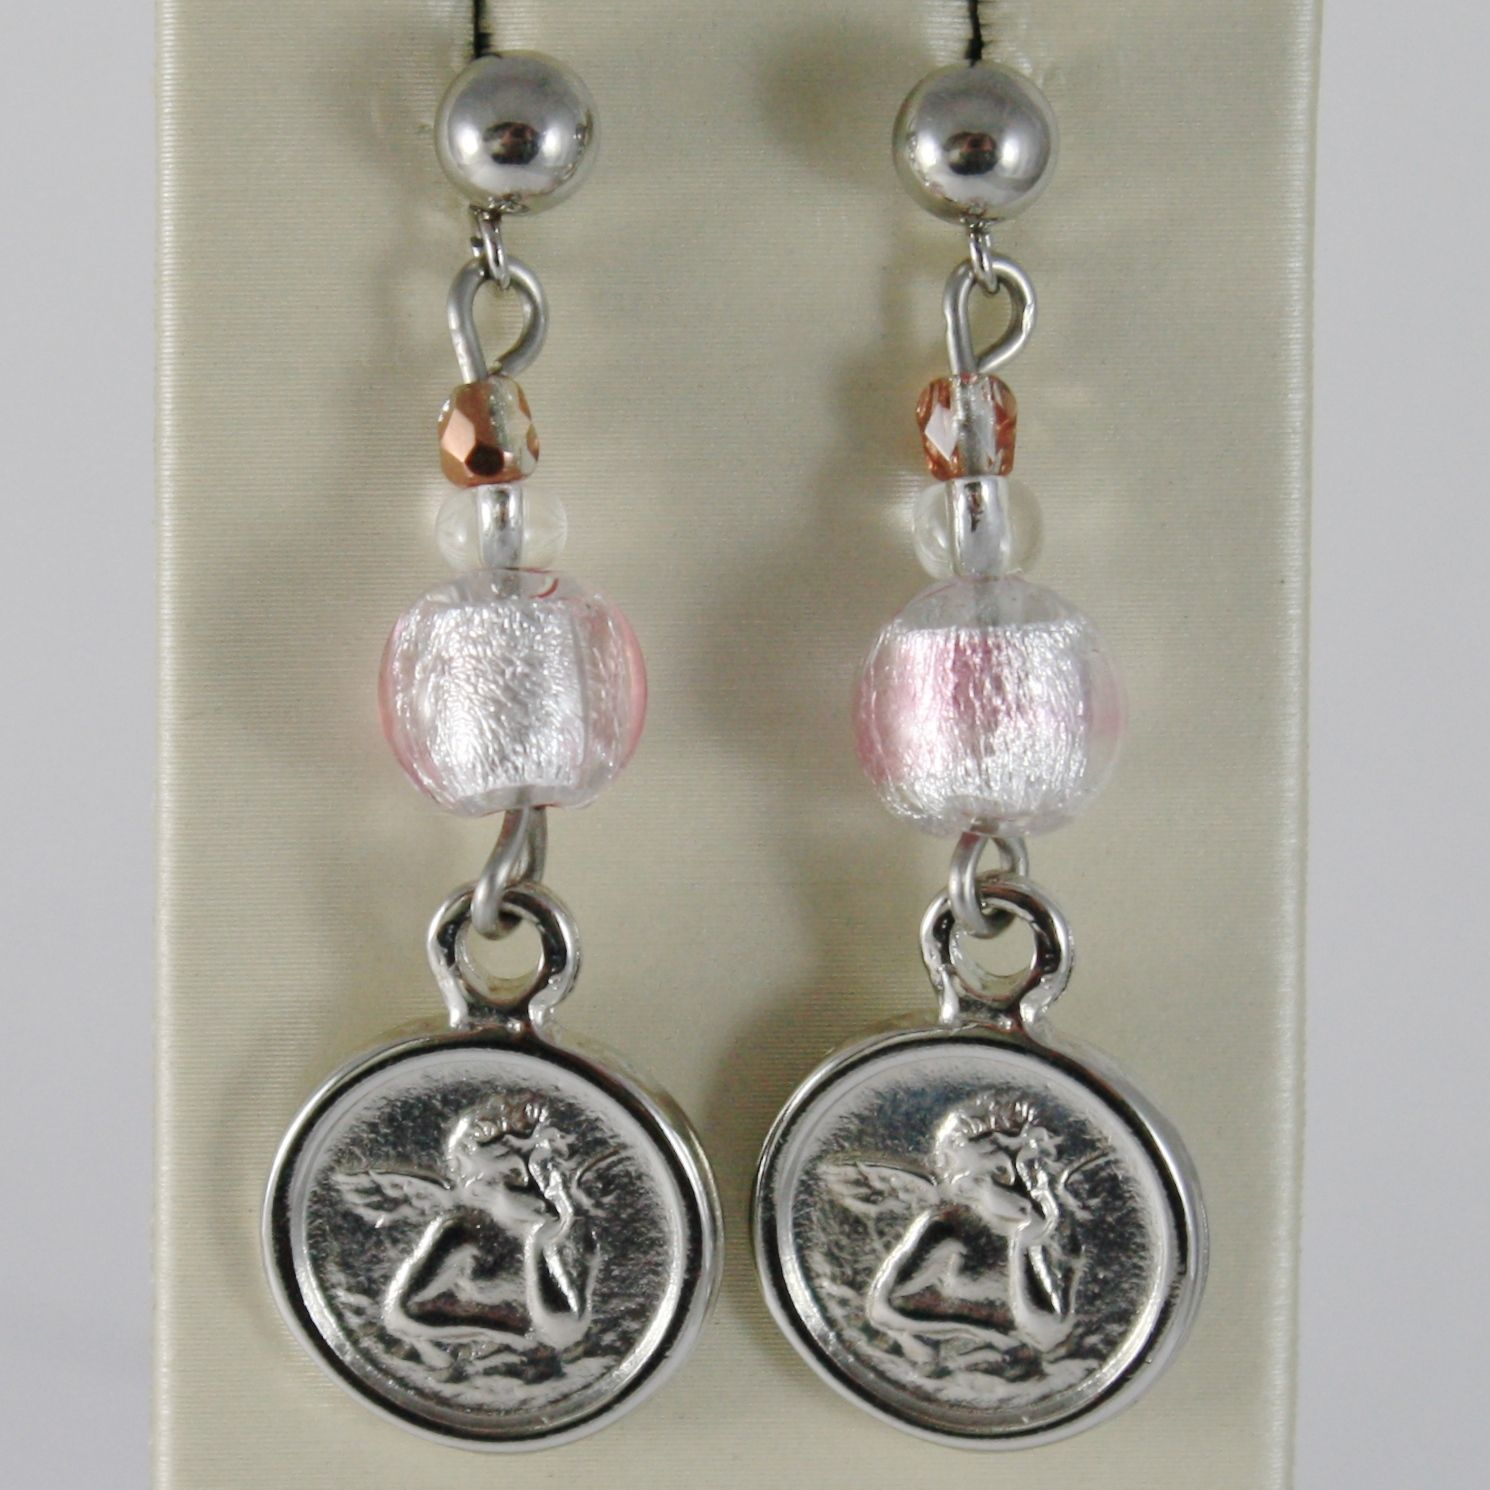 EARRINGS ANTICA MURRINA VENEZIA WITH MURANO GLASS ROSE AND ANGEL GUARDIAN